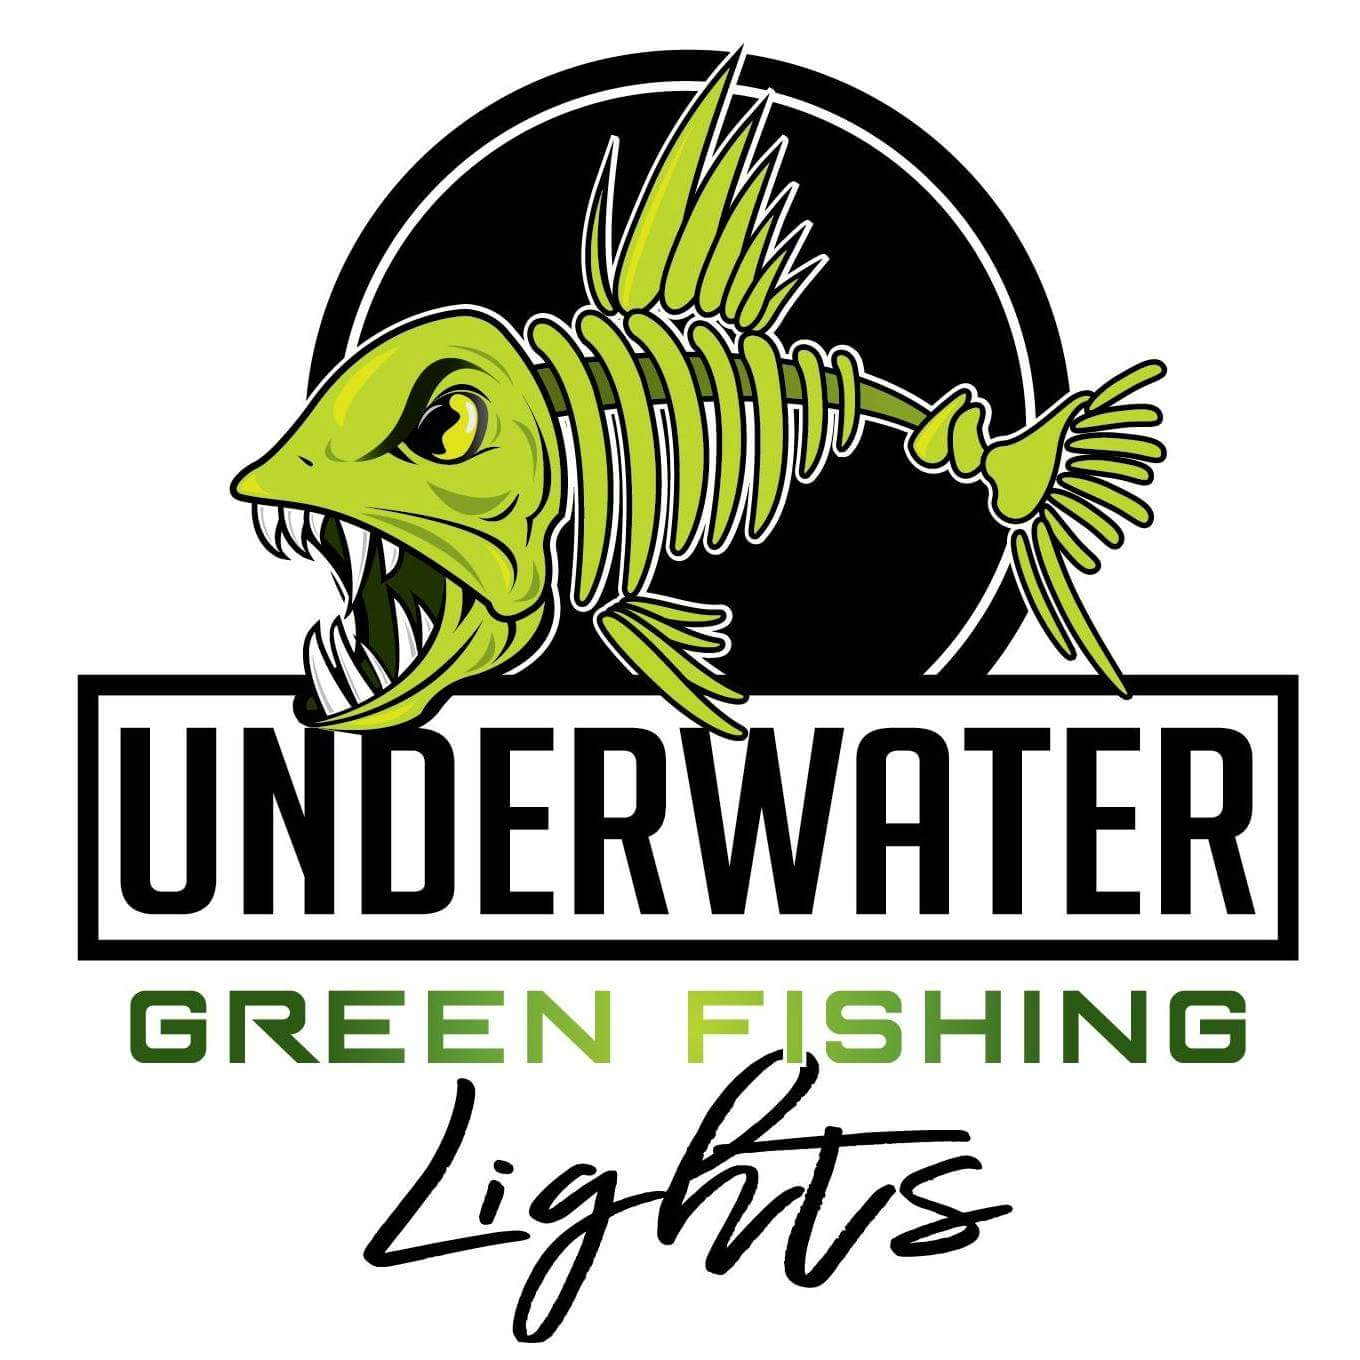 Underwater Green Fishing Lights